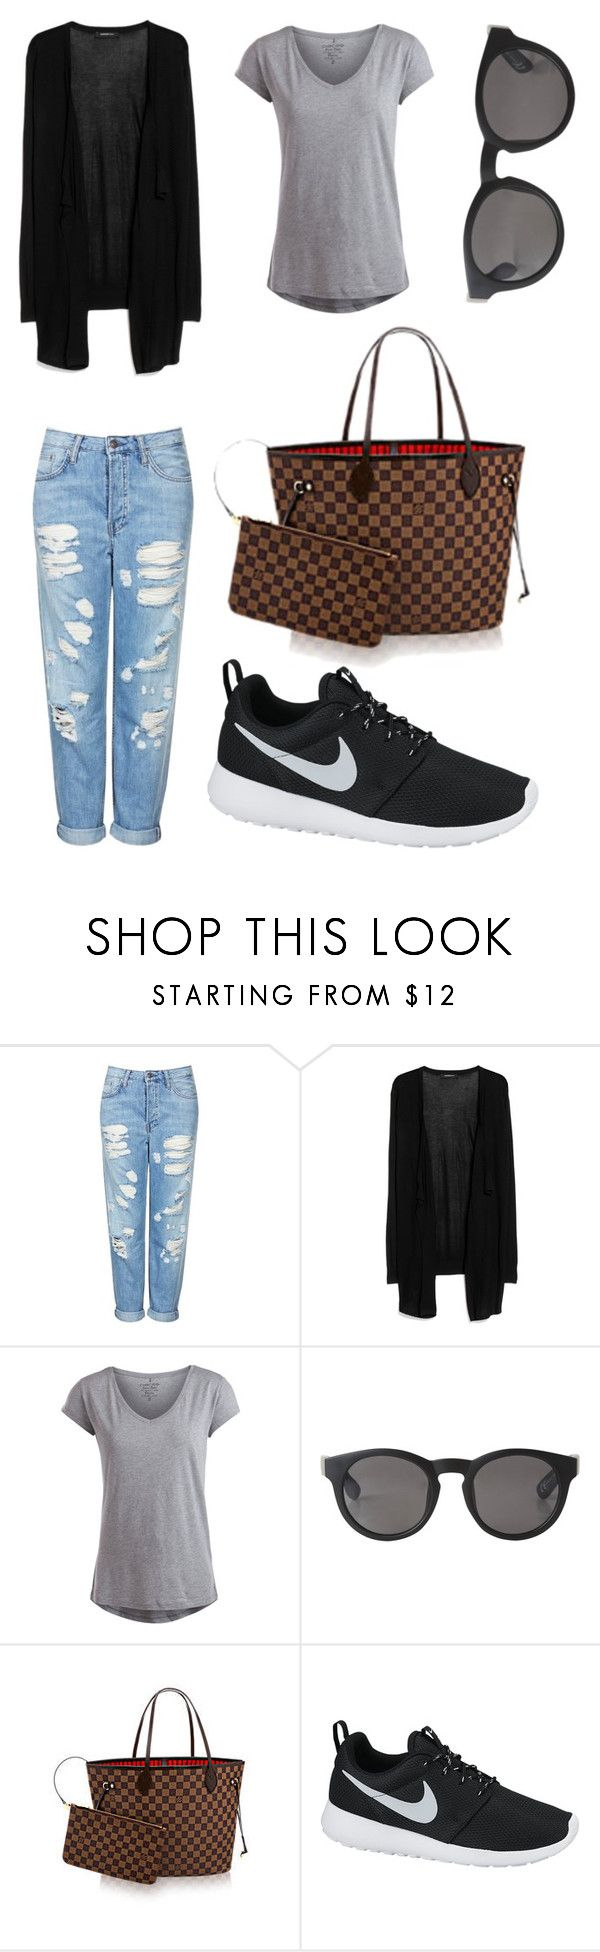 """""""Untitled #71"""" by pilvihelen on Polyvore featuring Topshop, MANGO, Pieces, Monki and NIKE"""